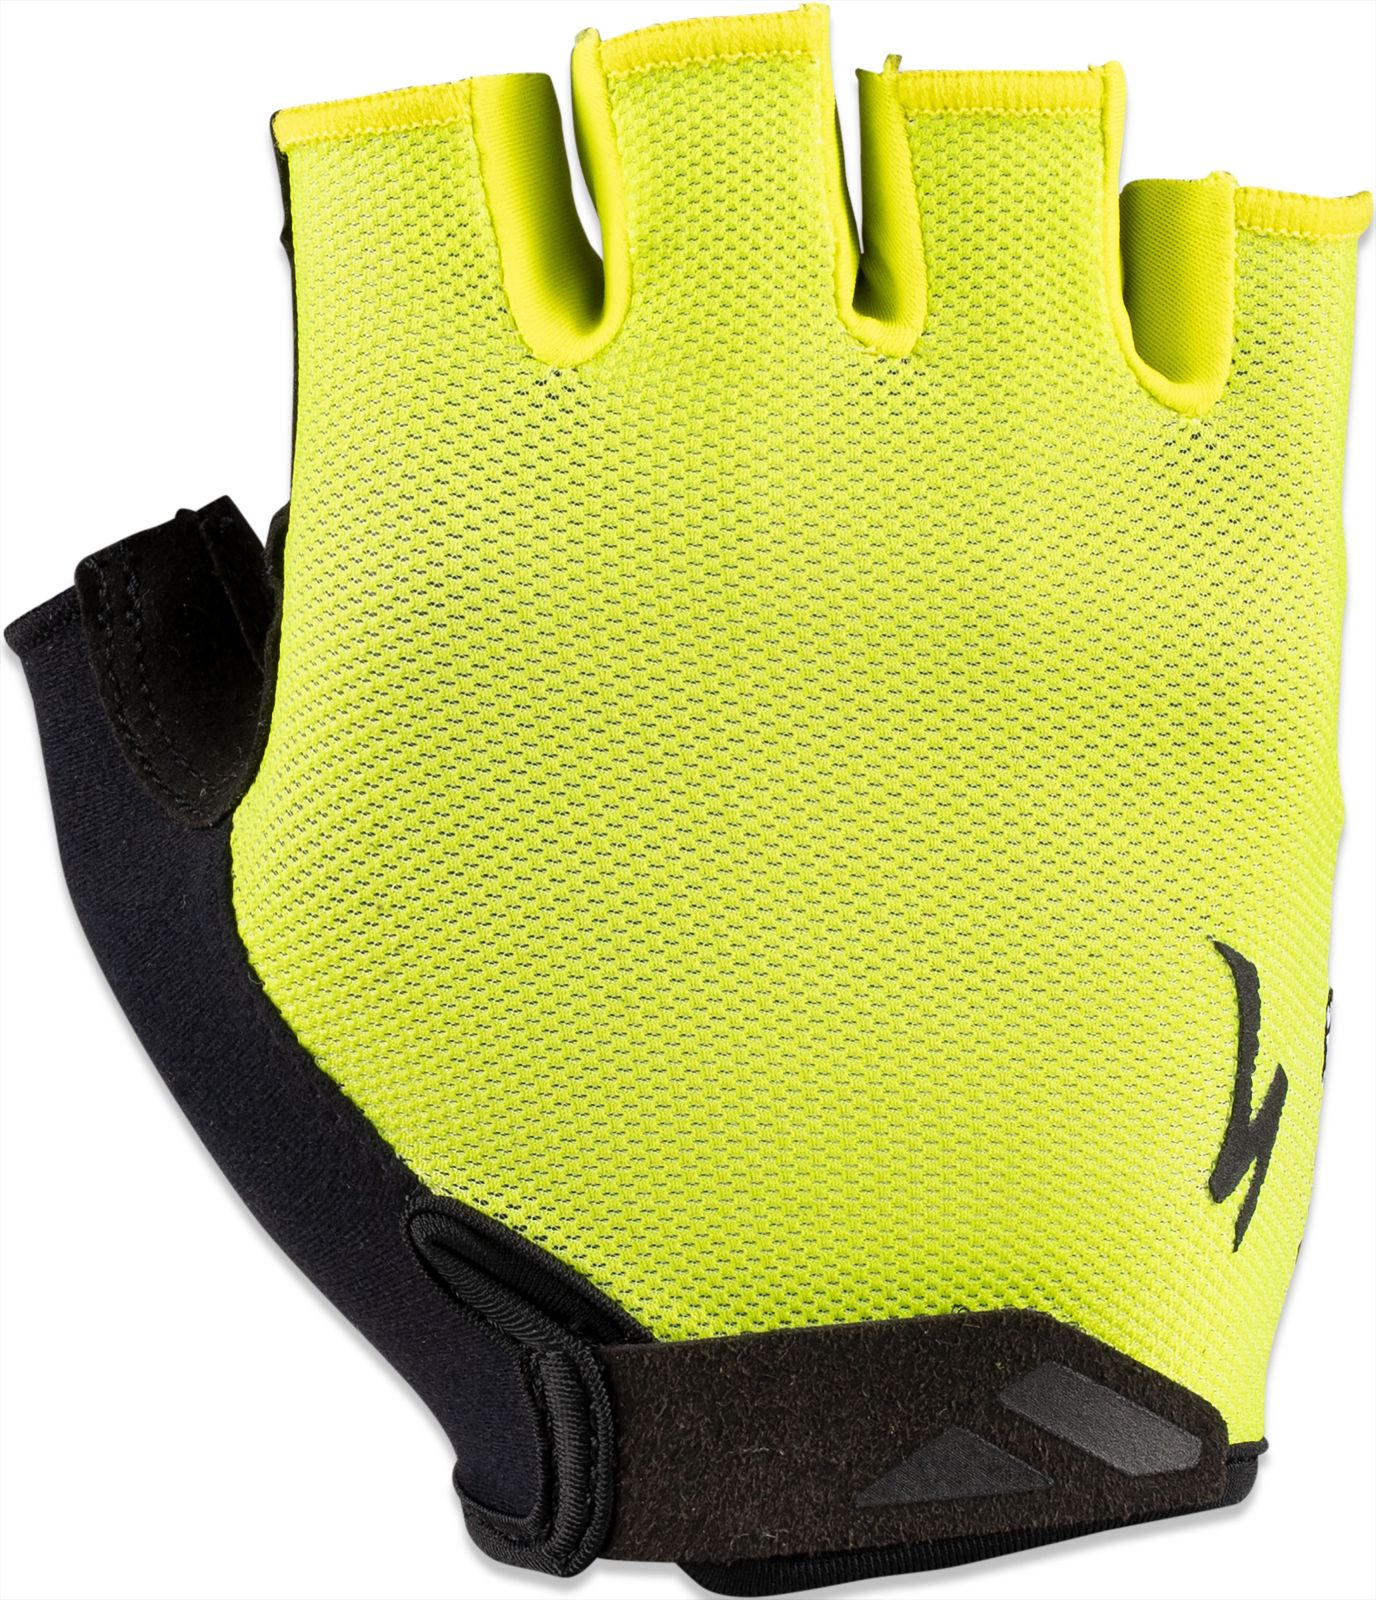 Specialized BG Sport Gel Glove SF - hyper green XL